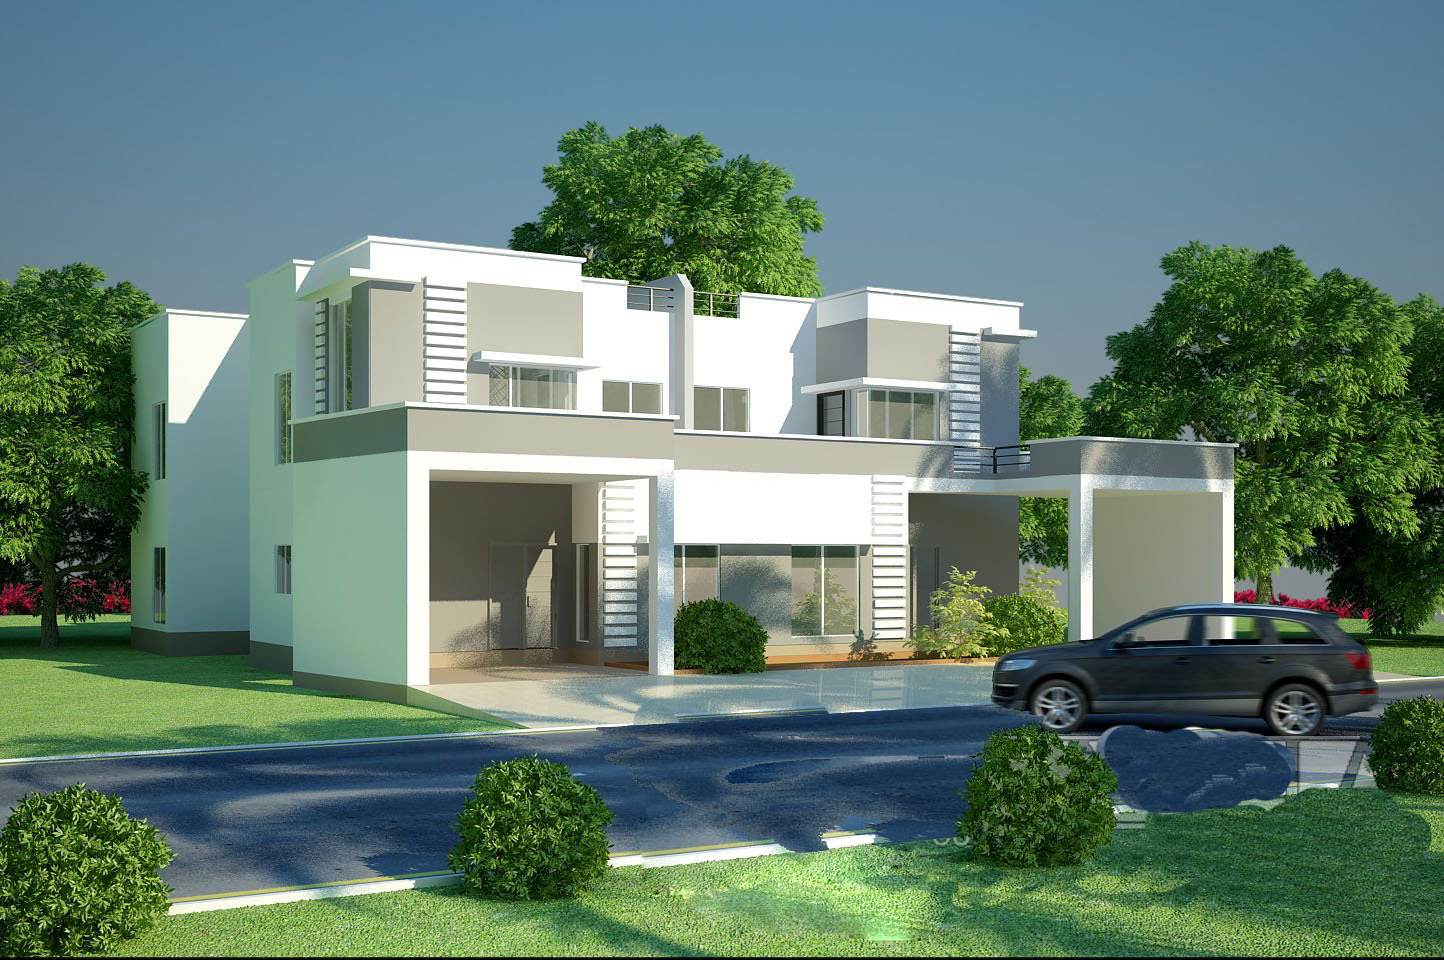 modern homes exterior designs front views pictures - Modern Homes Exterior